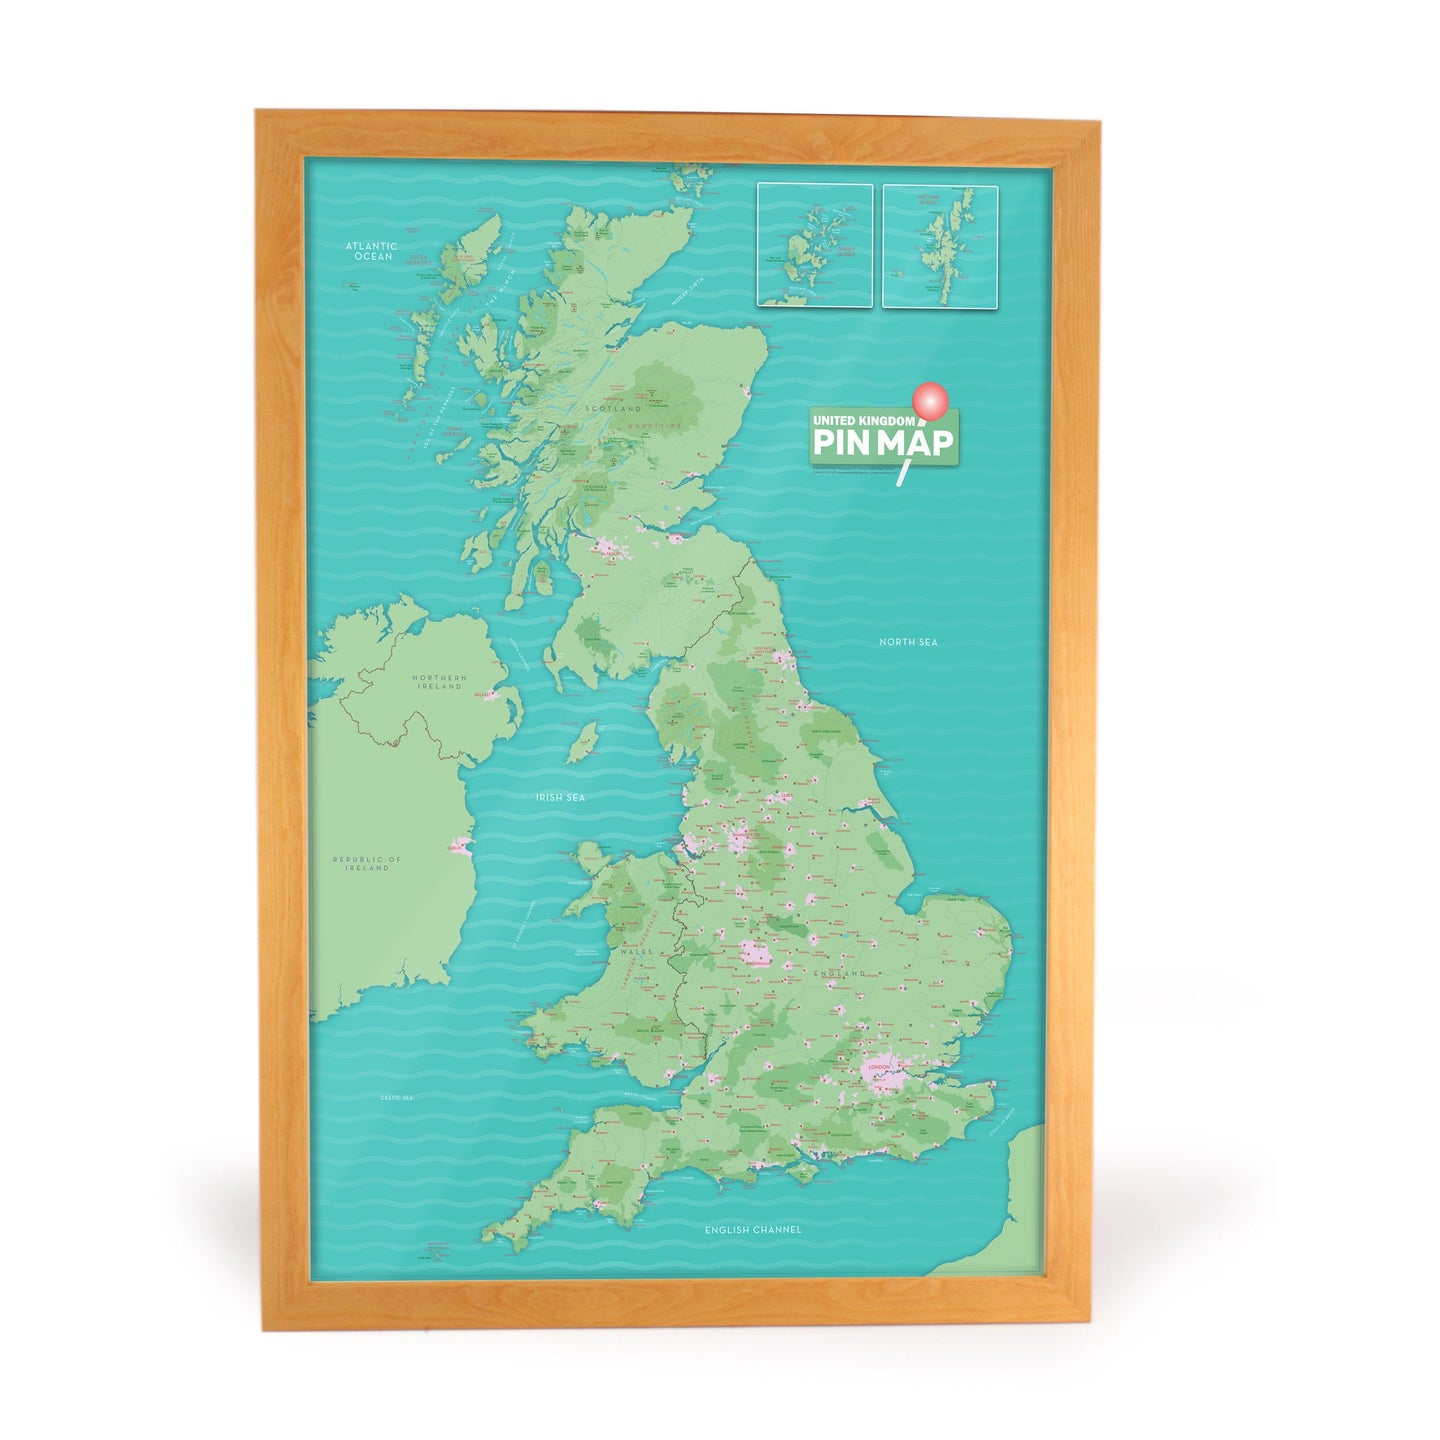 Uk pinboard map butler and hill map marketing map gift uk pinboard map gumiabroncs Gallery